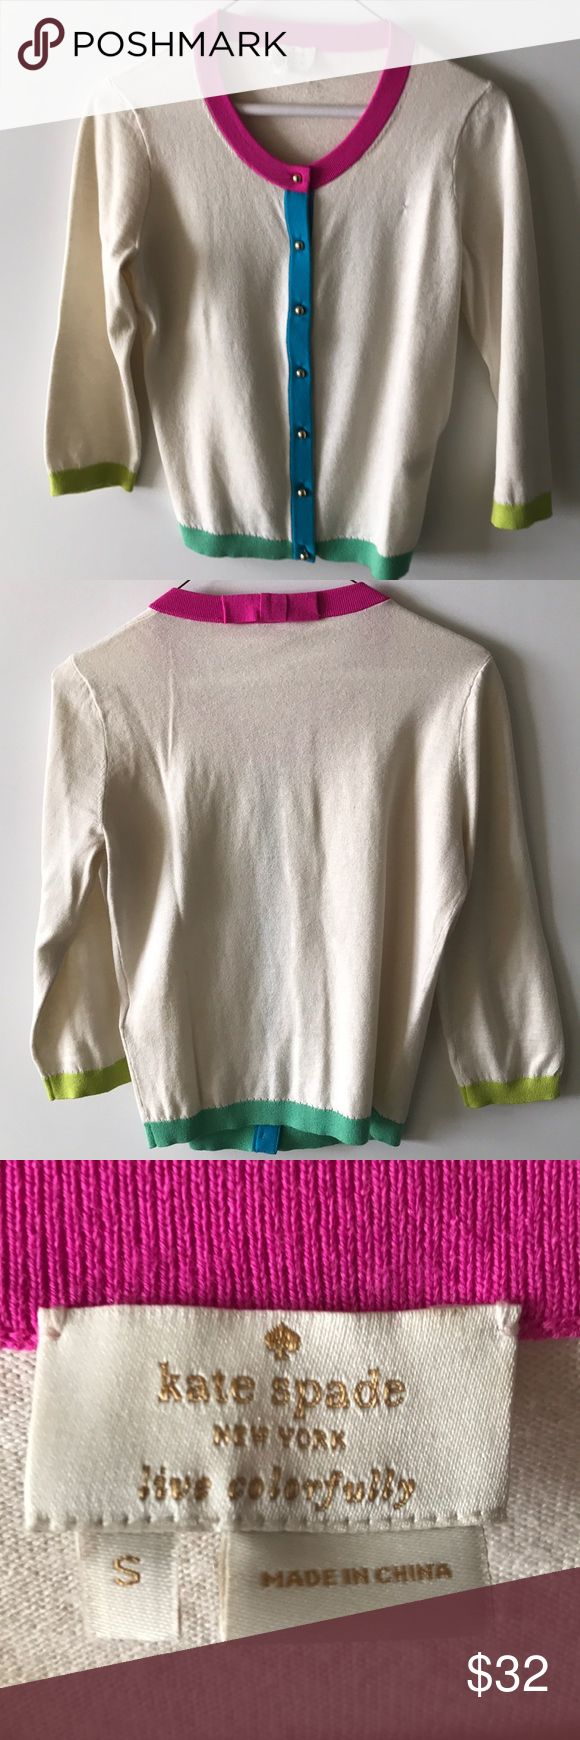 Kate Spade Cardigan Kate Spade cardigan, minor pilling and a small hole was repaired (see photos), price reflects condition, size Small kate spade Sweaters Cardigans